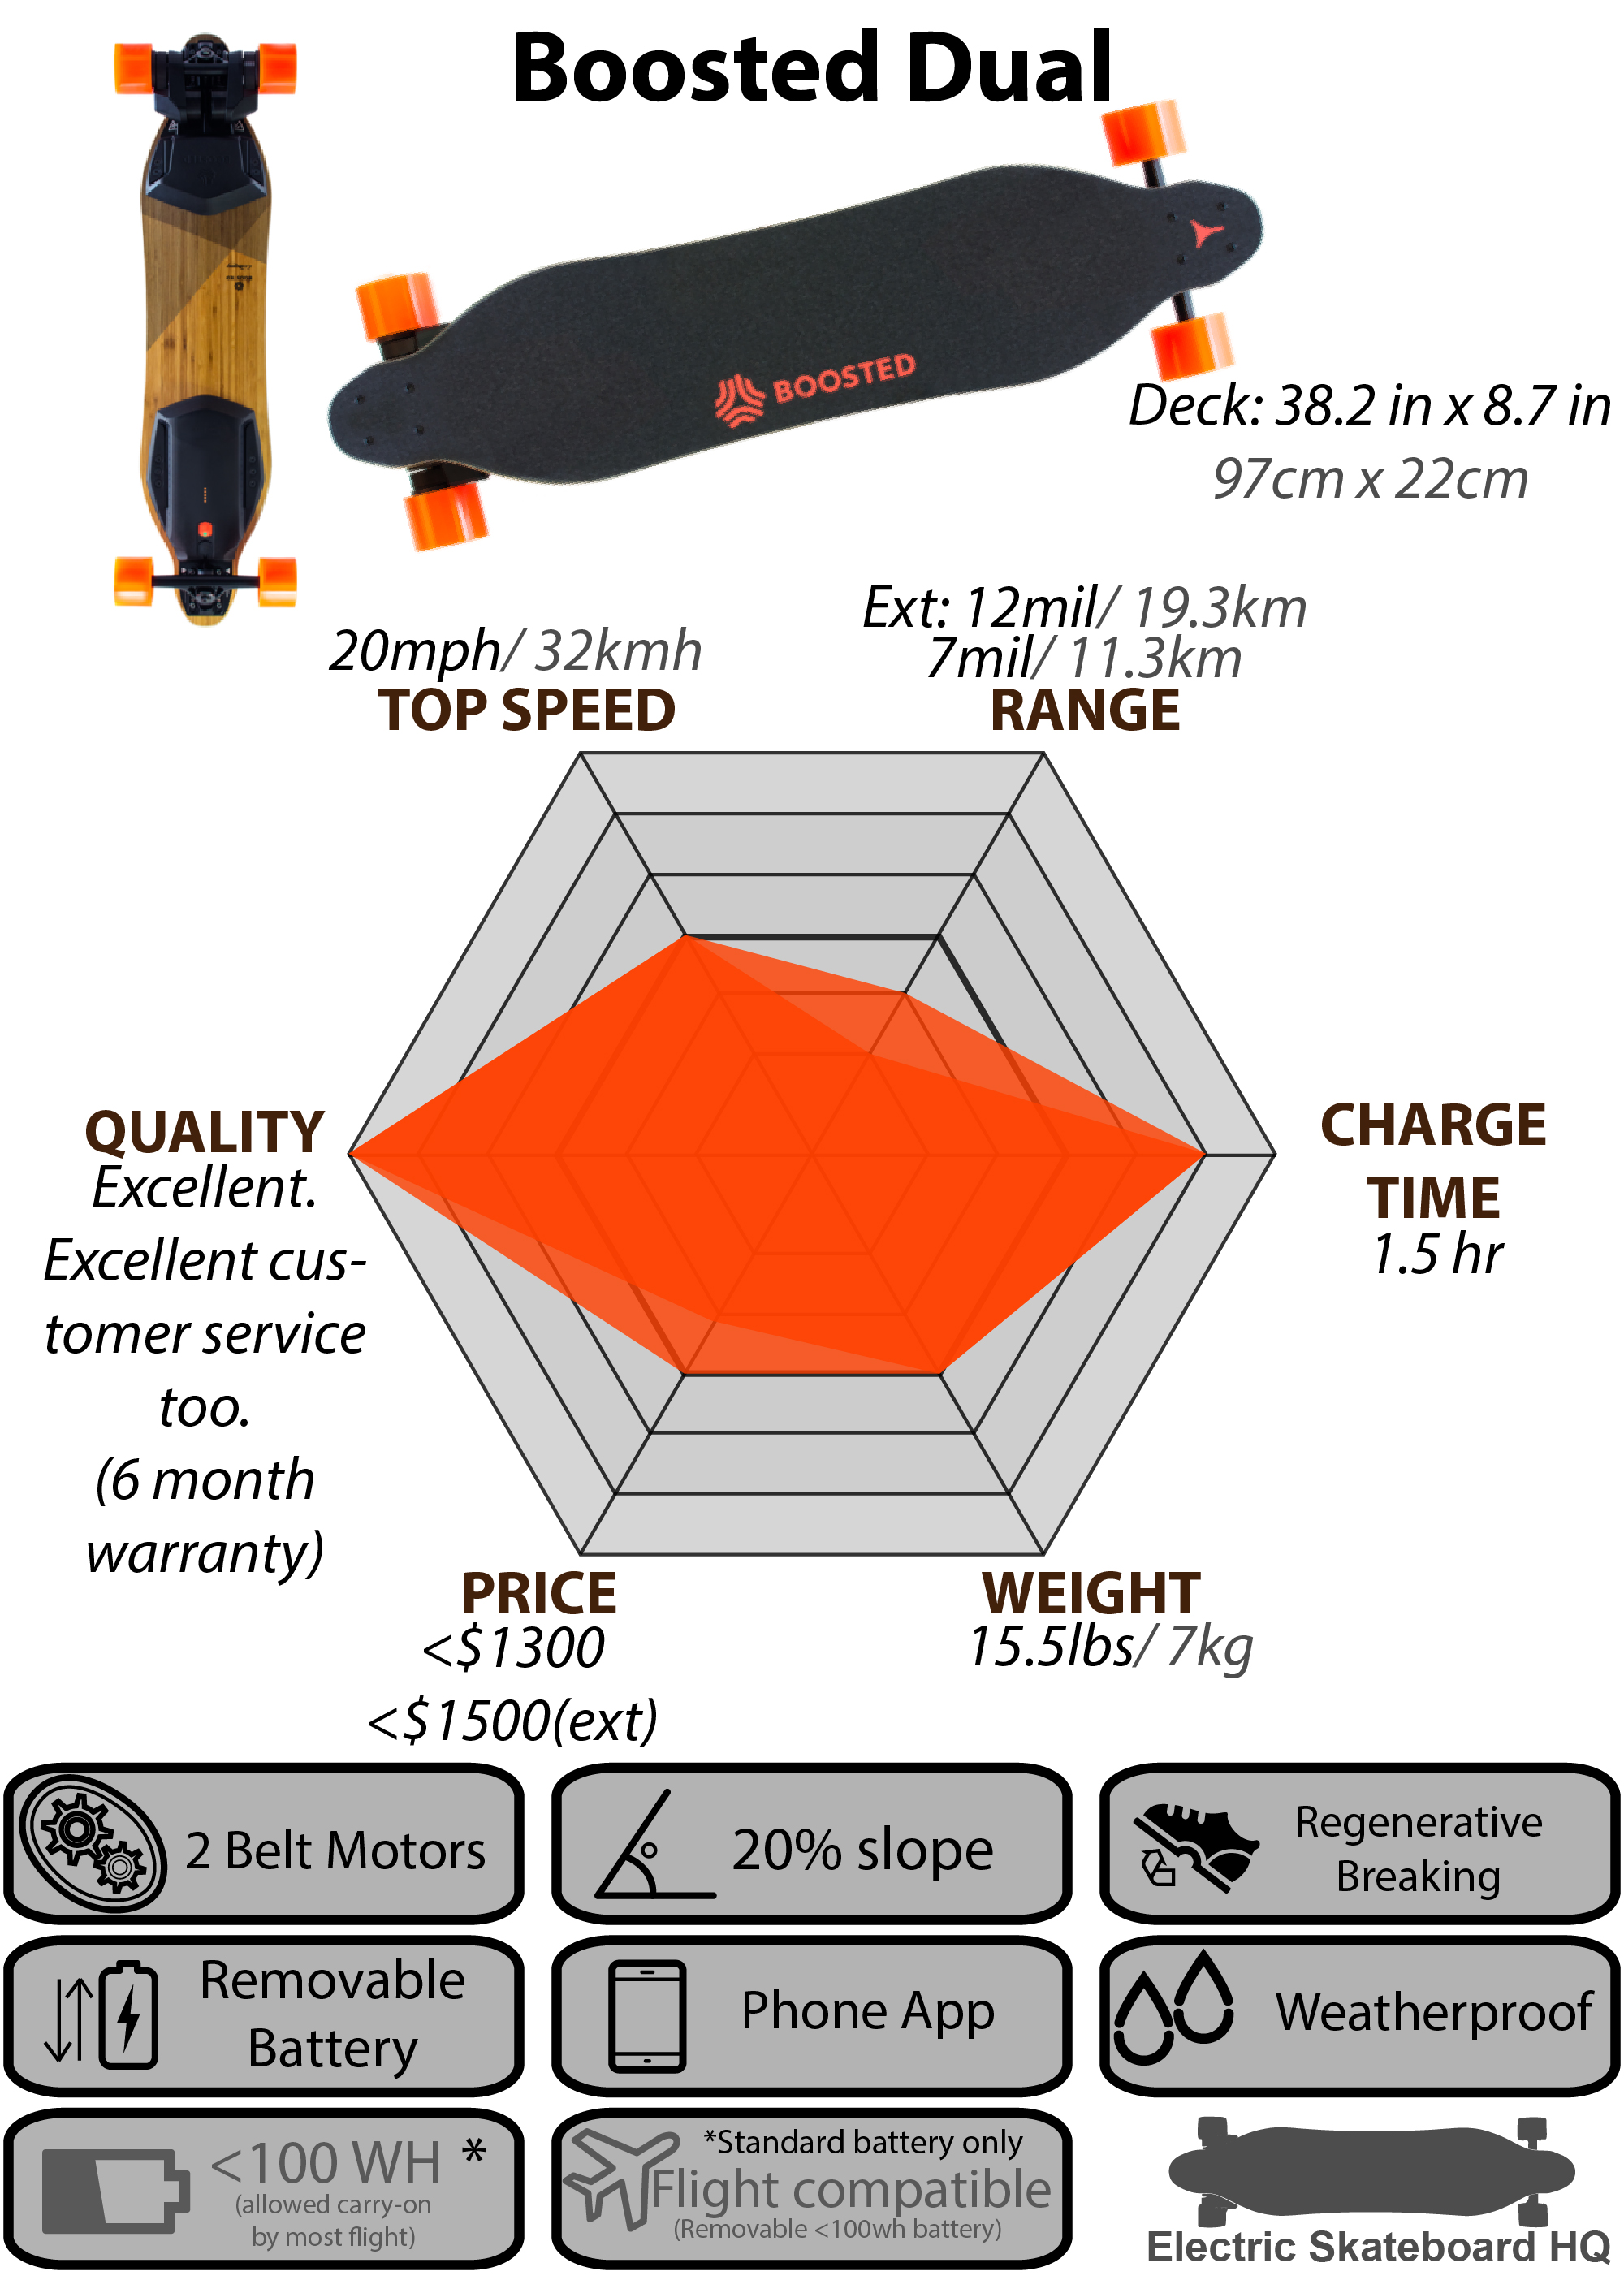 Dual Electric Skateboard Diagram Worksheet And Wiring Parts Comparison Charts Infographics Hq Rh Electricskateboardhq Com Skateboards At Zumiez